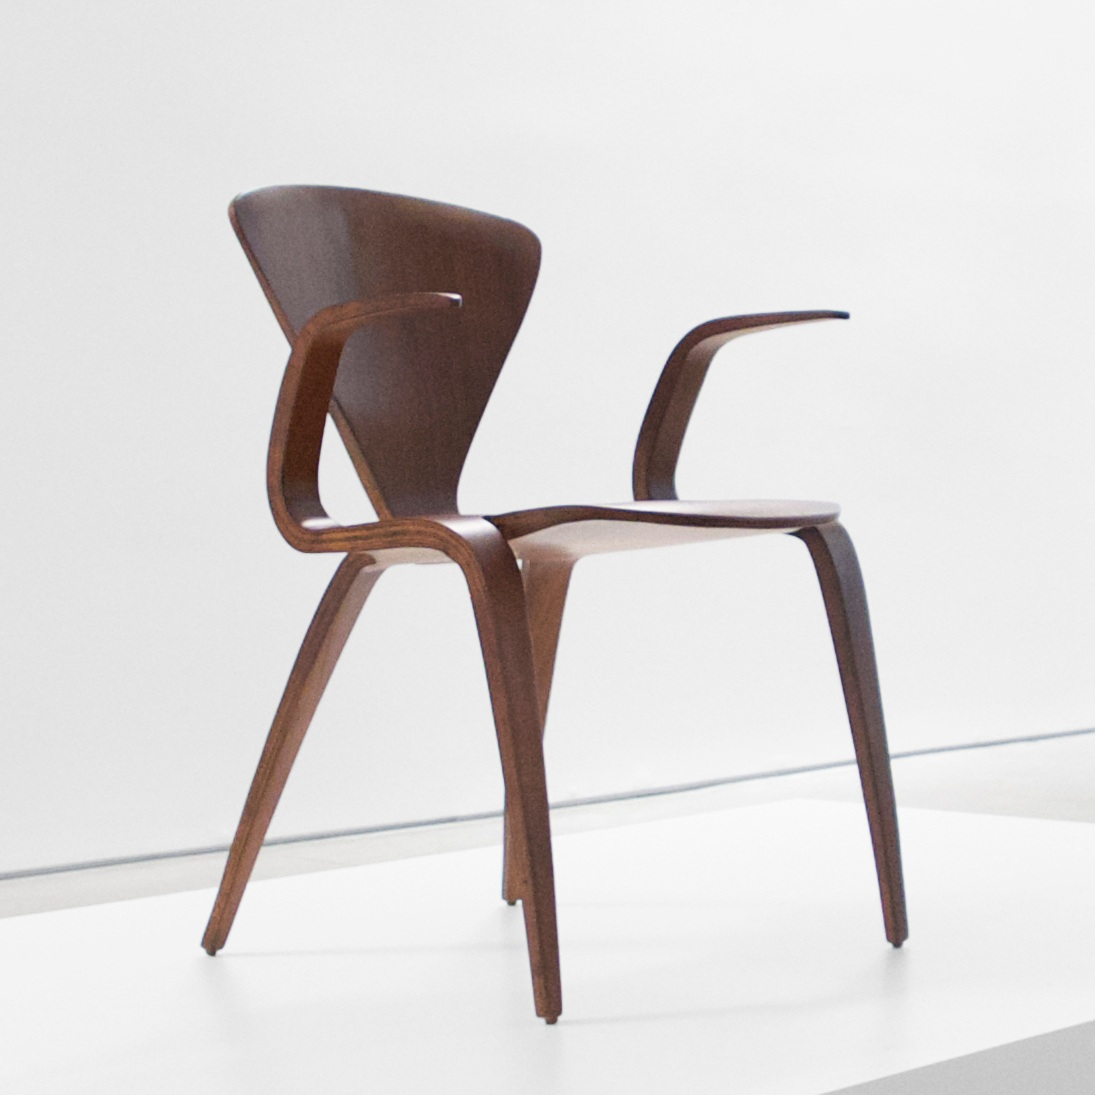 norman cherner rare prototype armchair for plycraft $15,000